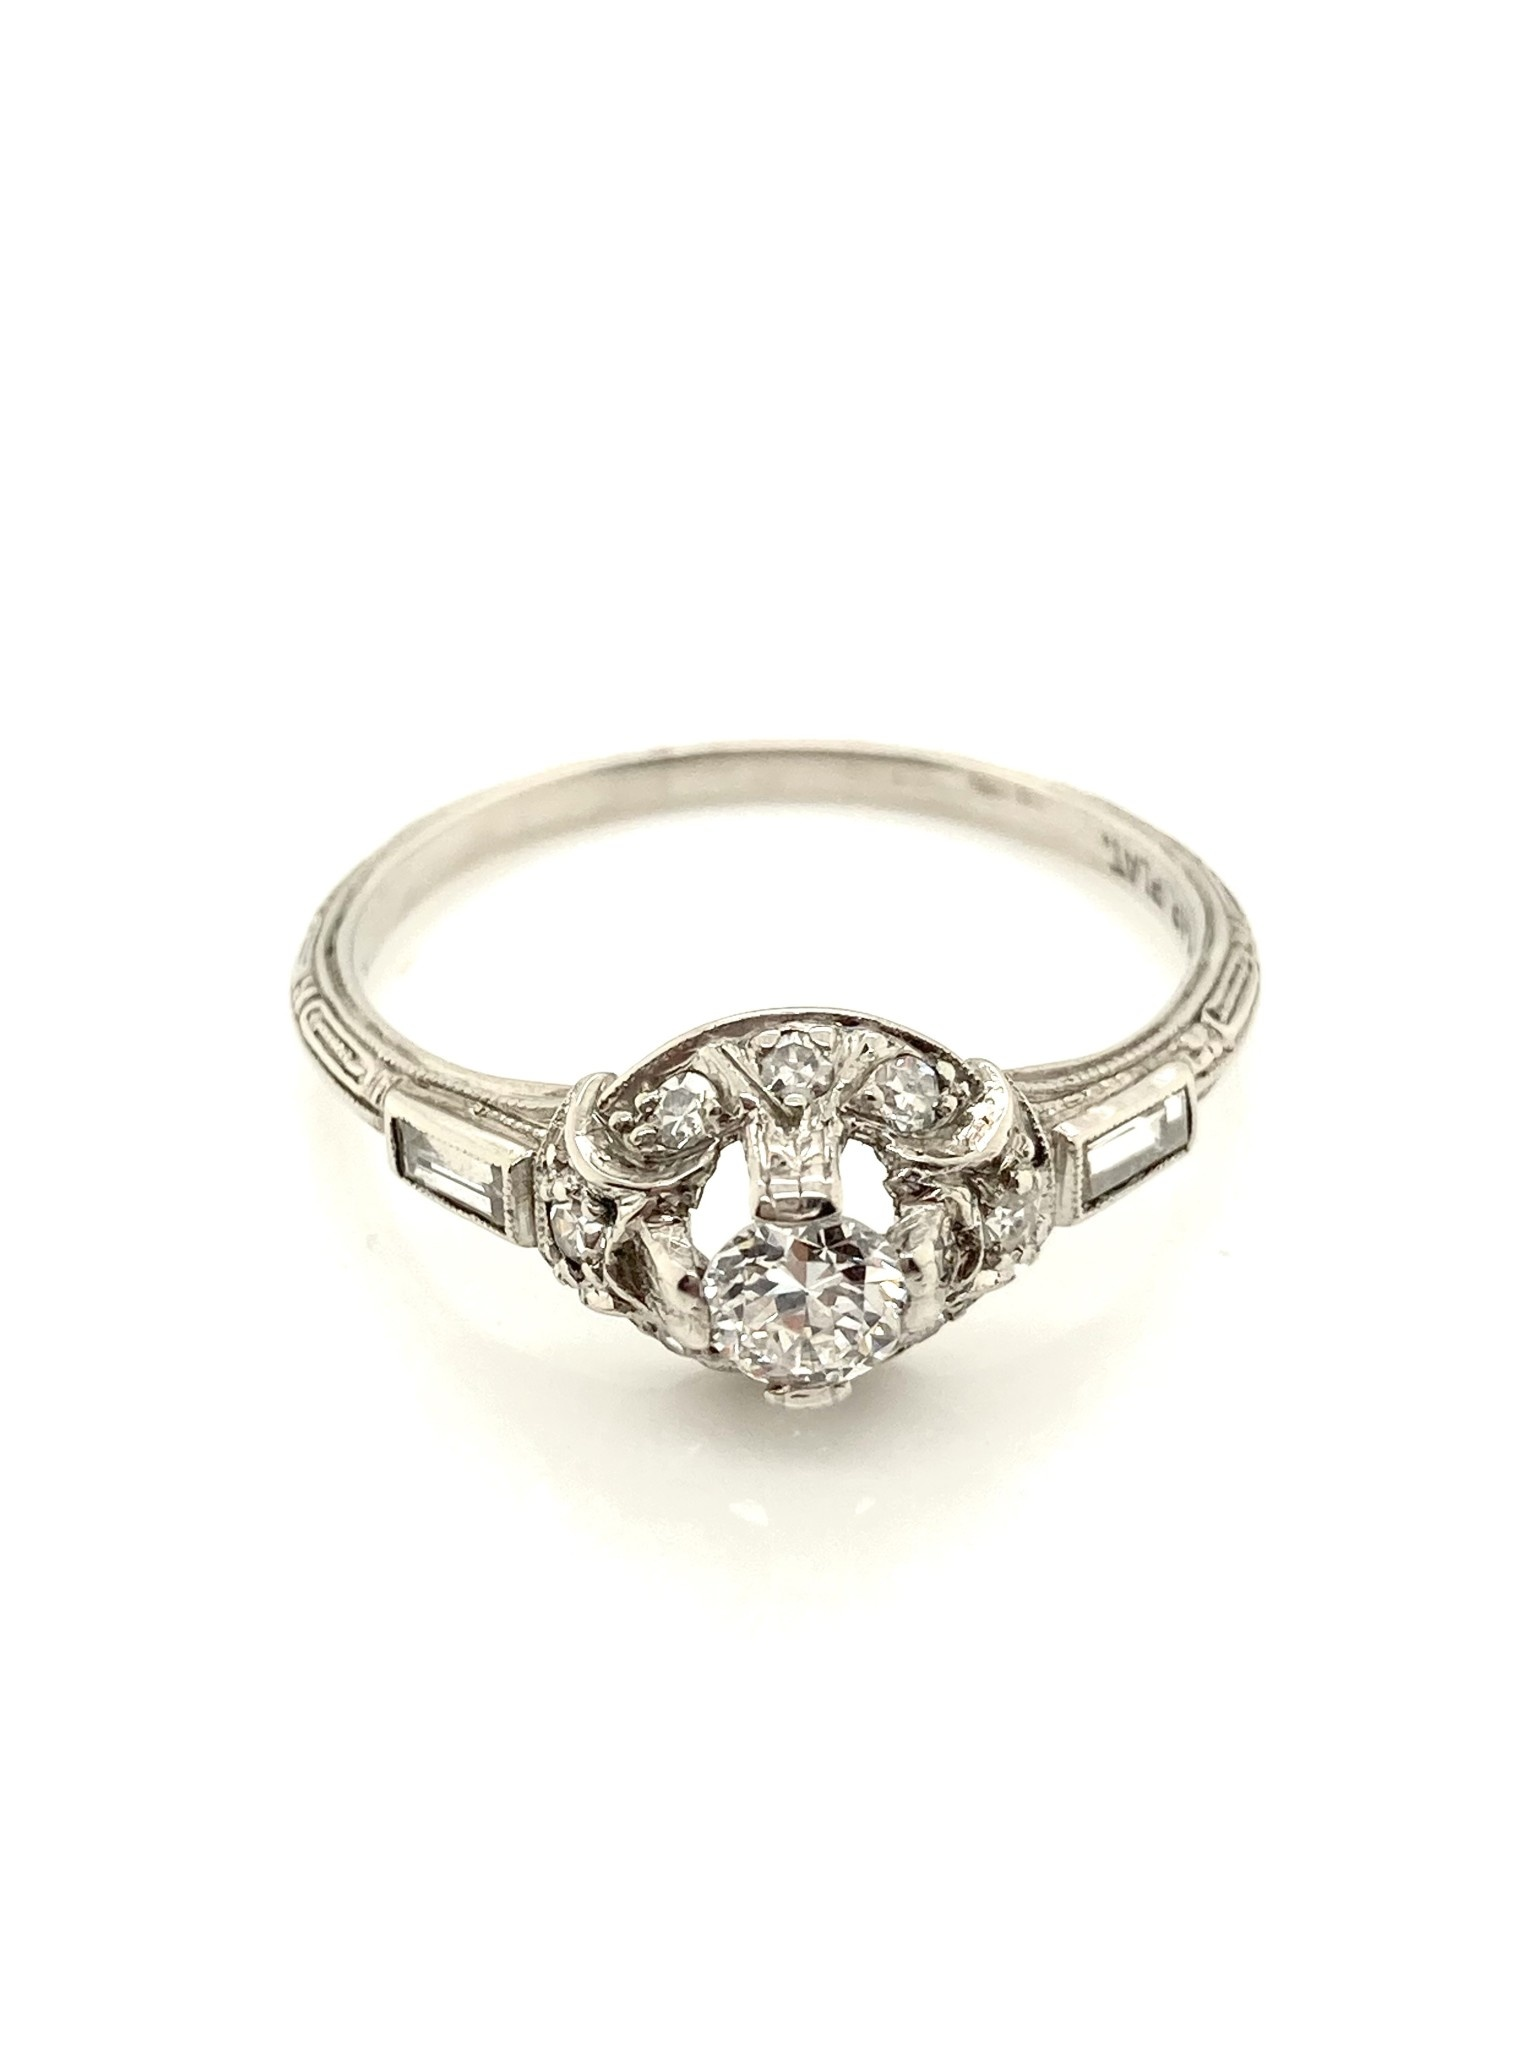 Platinum Diamond Ring with Halo and Engraved Shank